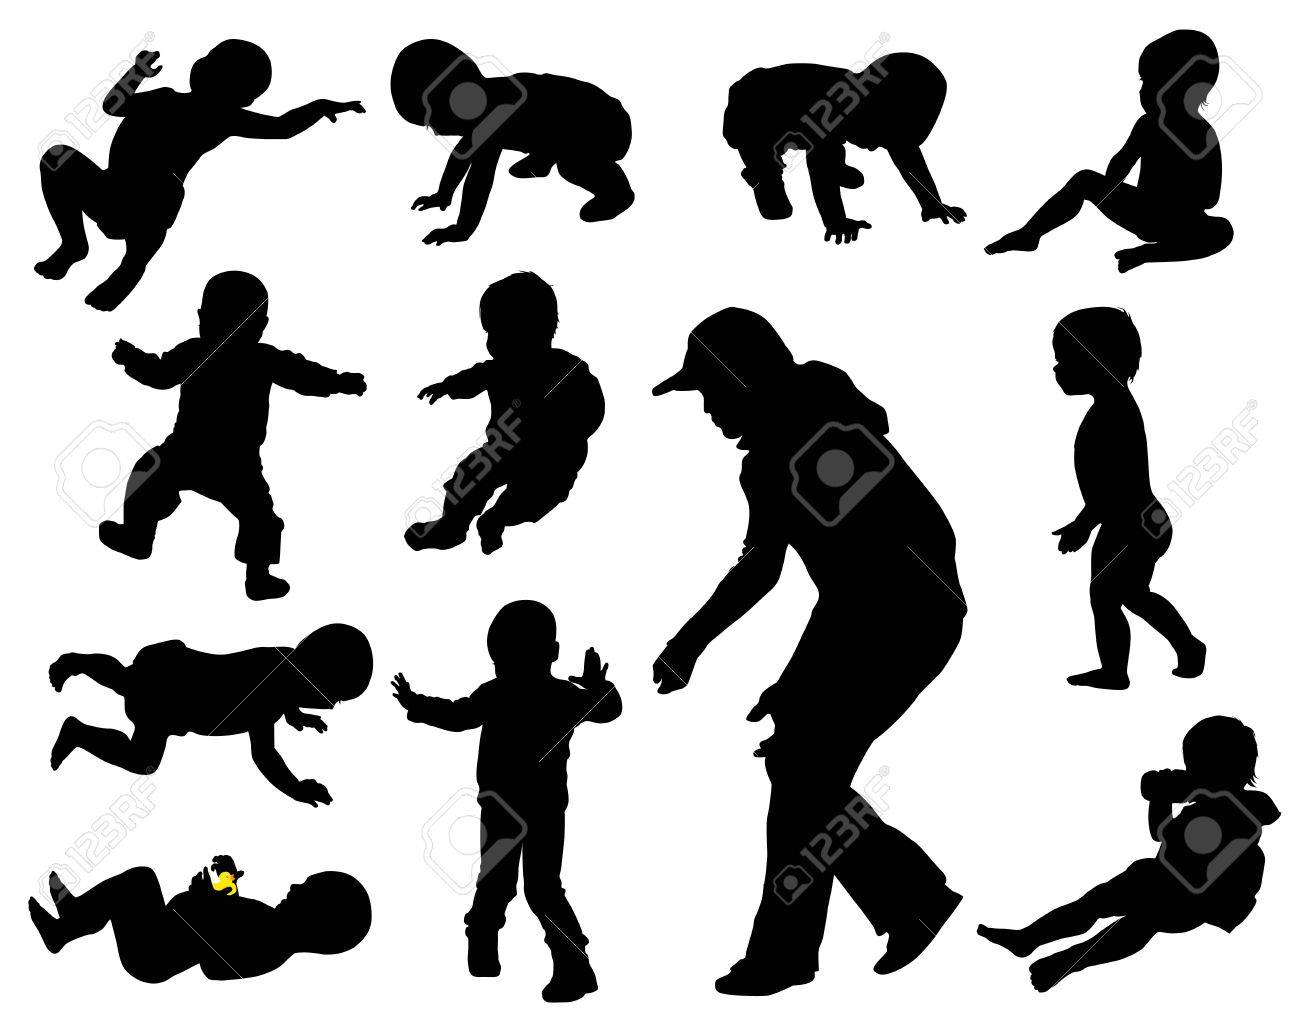 Baby silhouettes collection. Stock Vector - 12307817